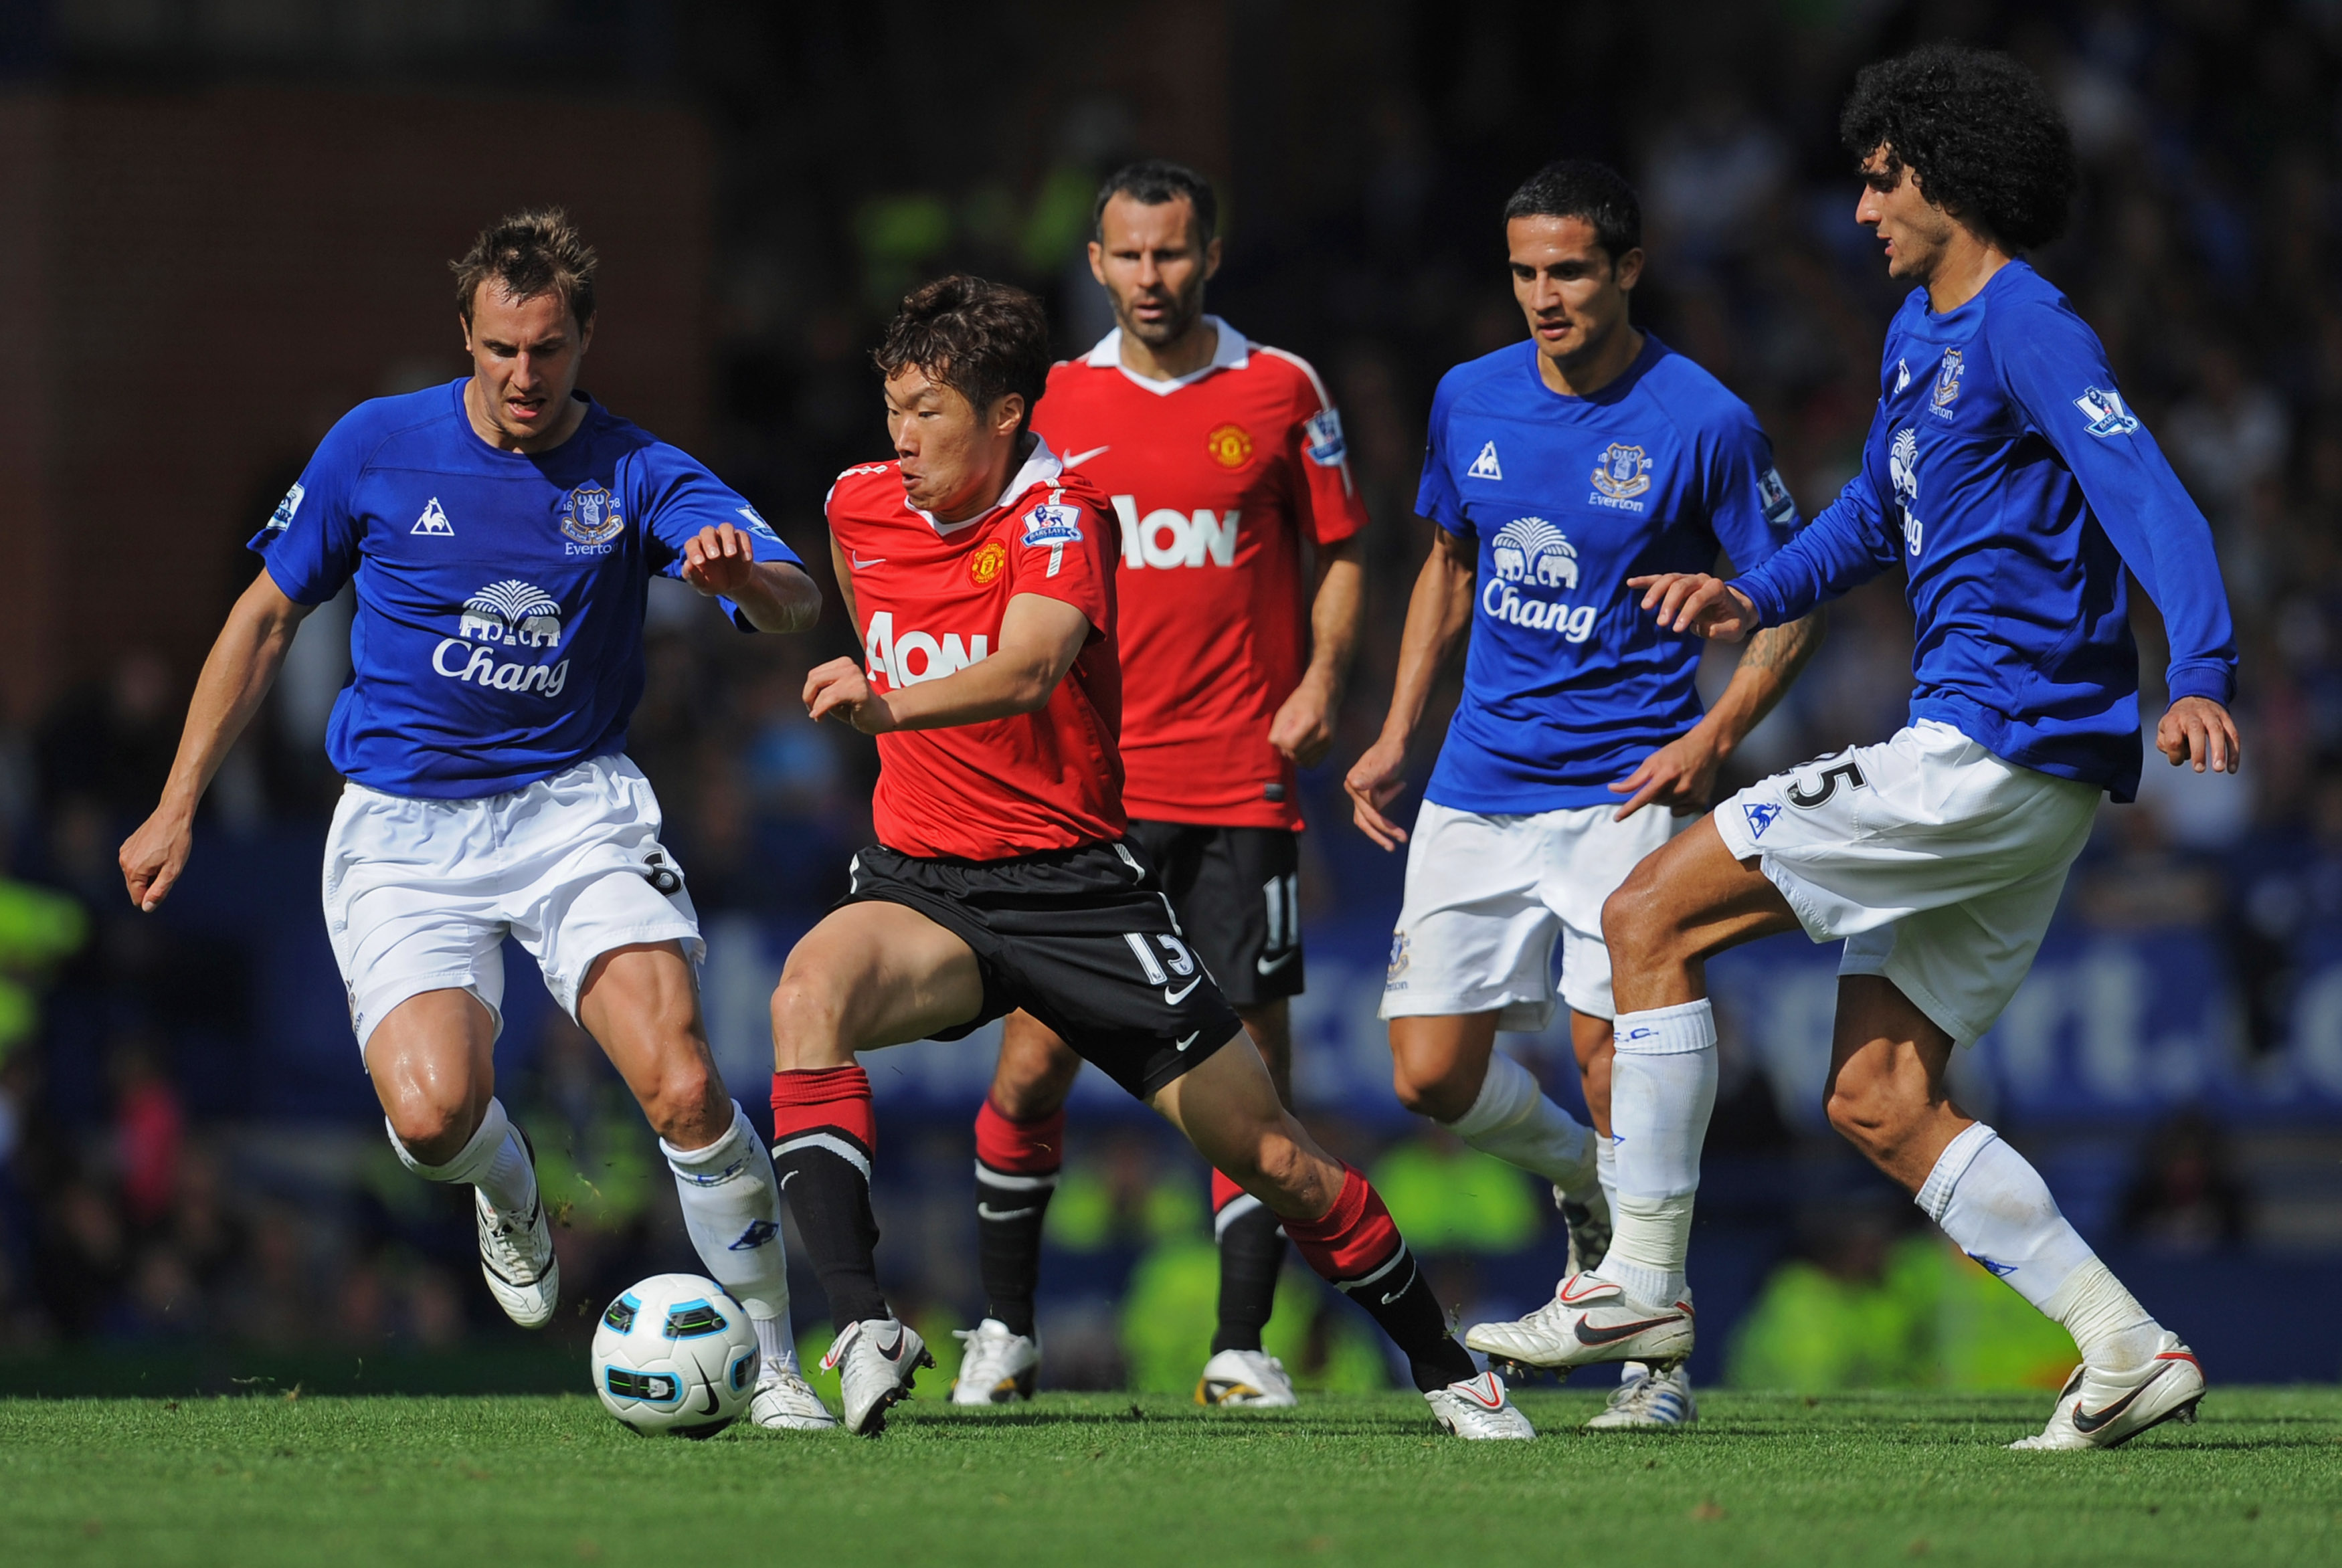 LIVERPOOL, ENGLAND - SEPTEMBER 11: Ji-Sung Park of Manchester United is pressured by Phil Jagielka, Tim Cahill and Marouane Fellaini of Everton during the Barclays Premier League match between Everton and Manchester United at Goodison Park on September 11